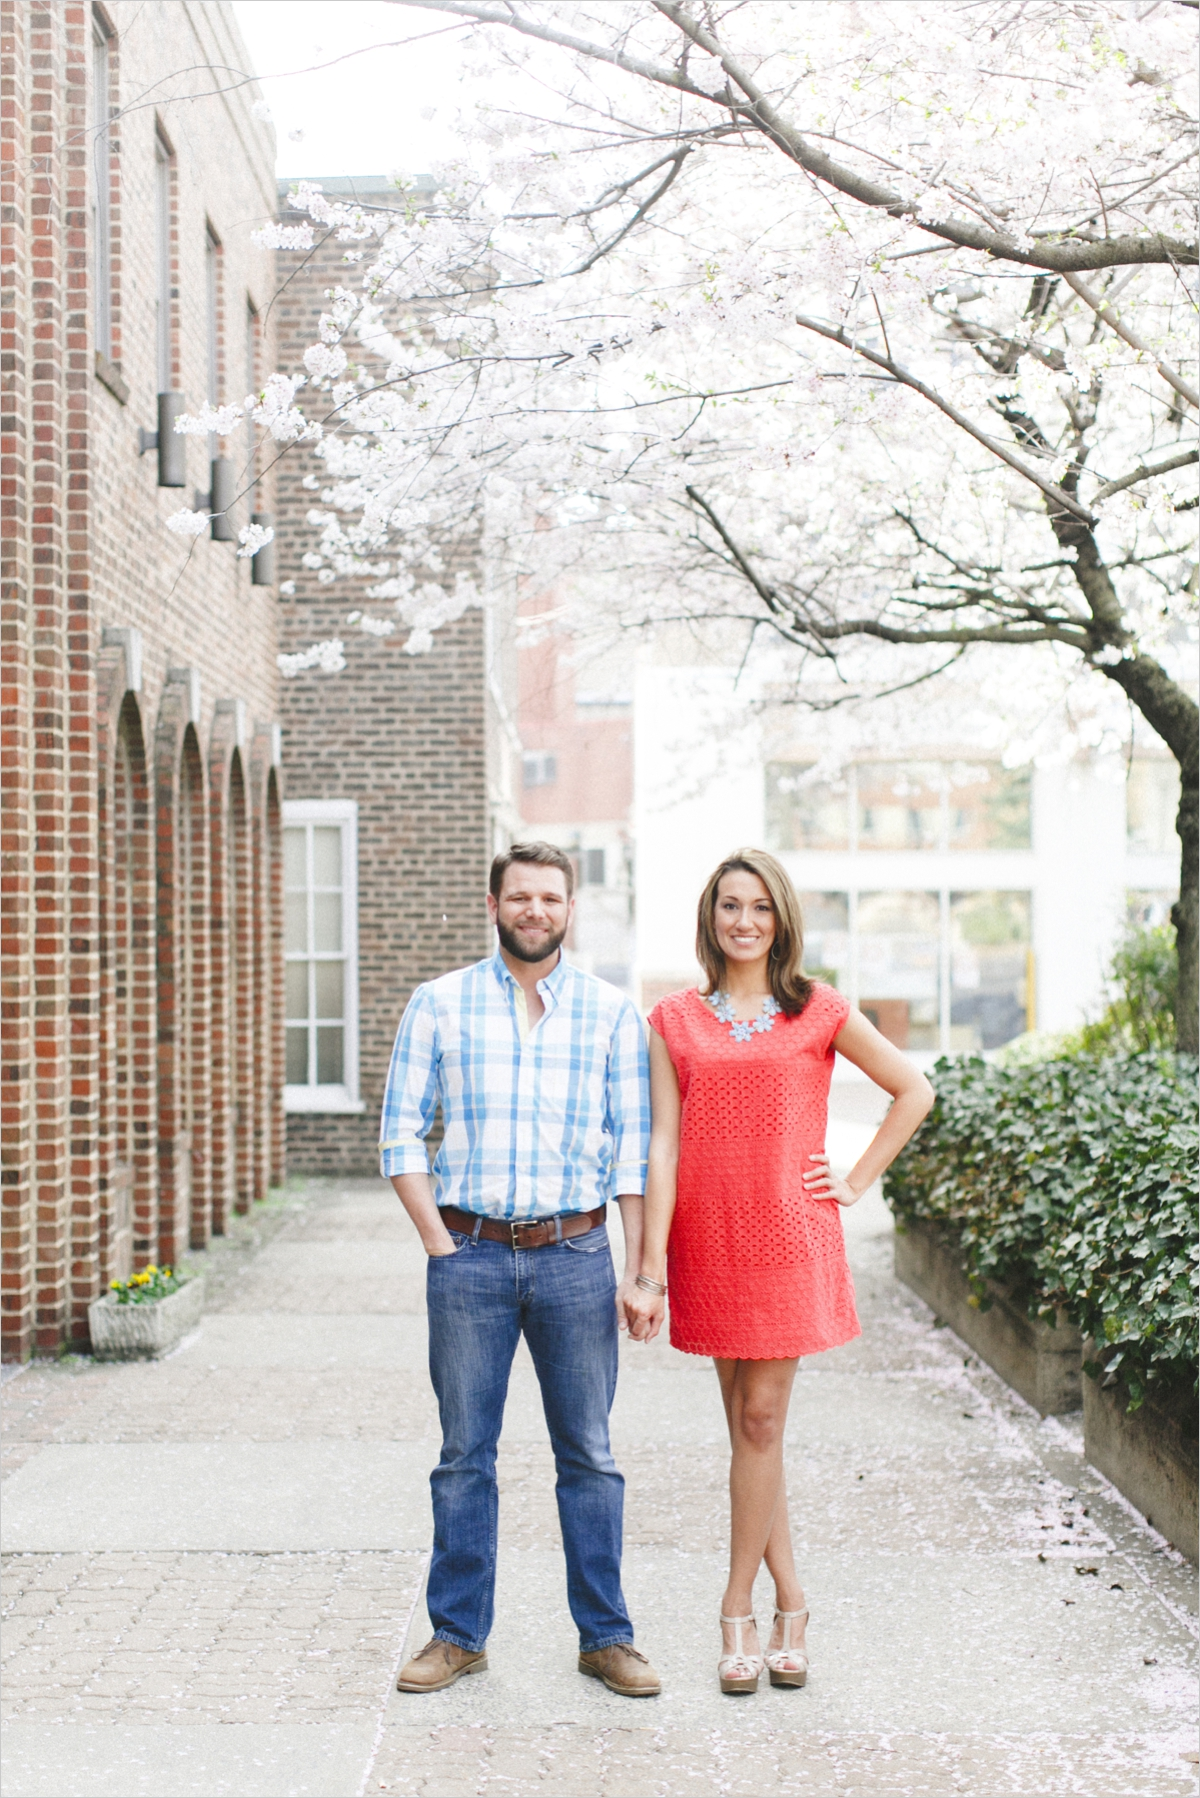 erica-jeremy-surprise-proposal-harrisonburg-virginia_0006